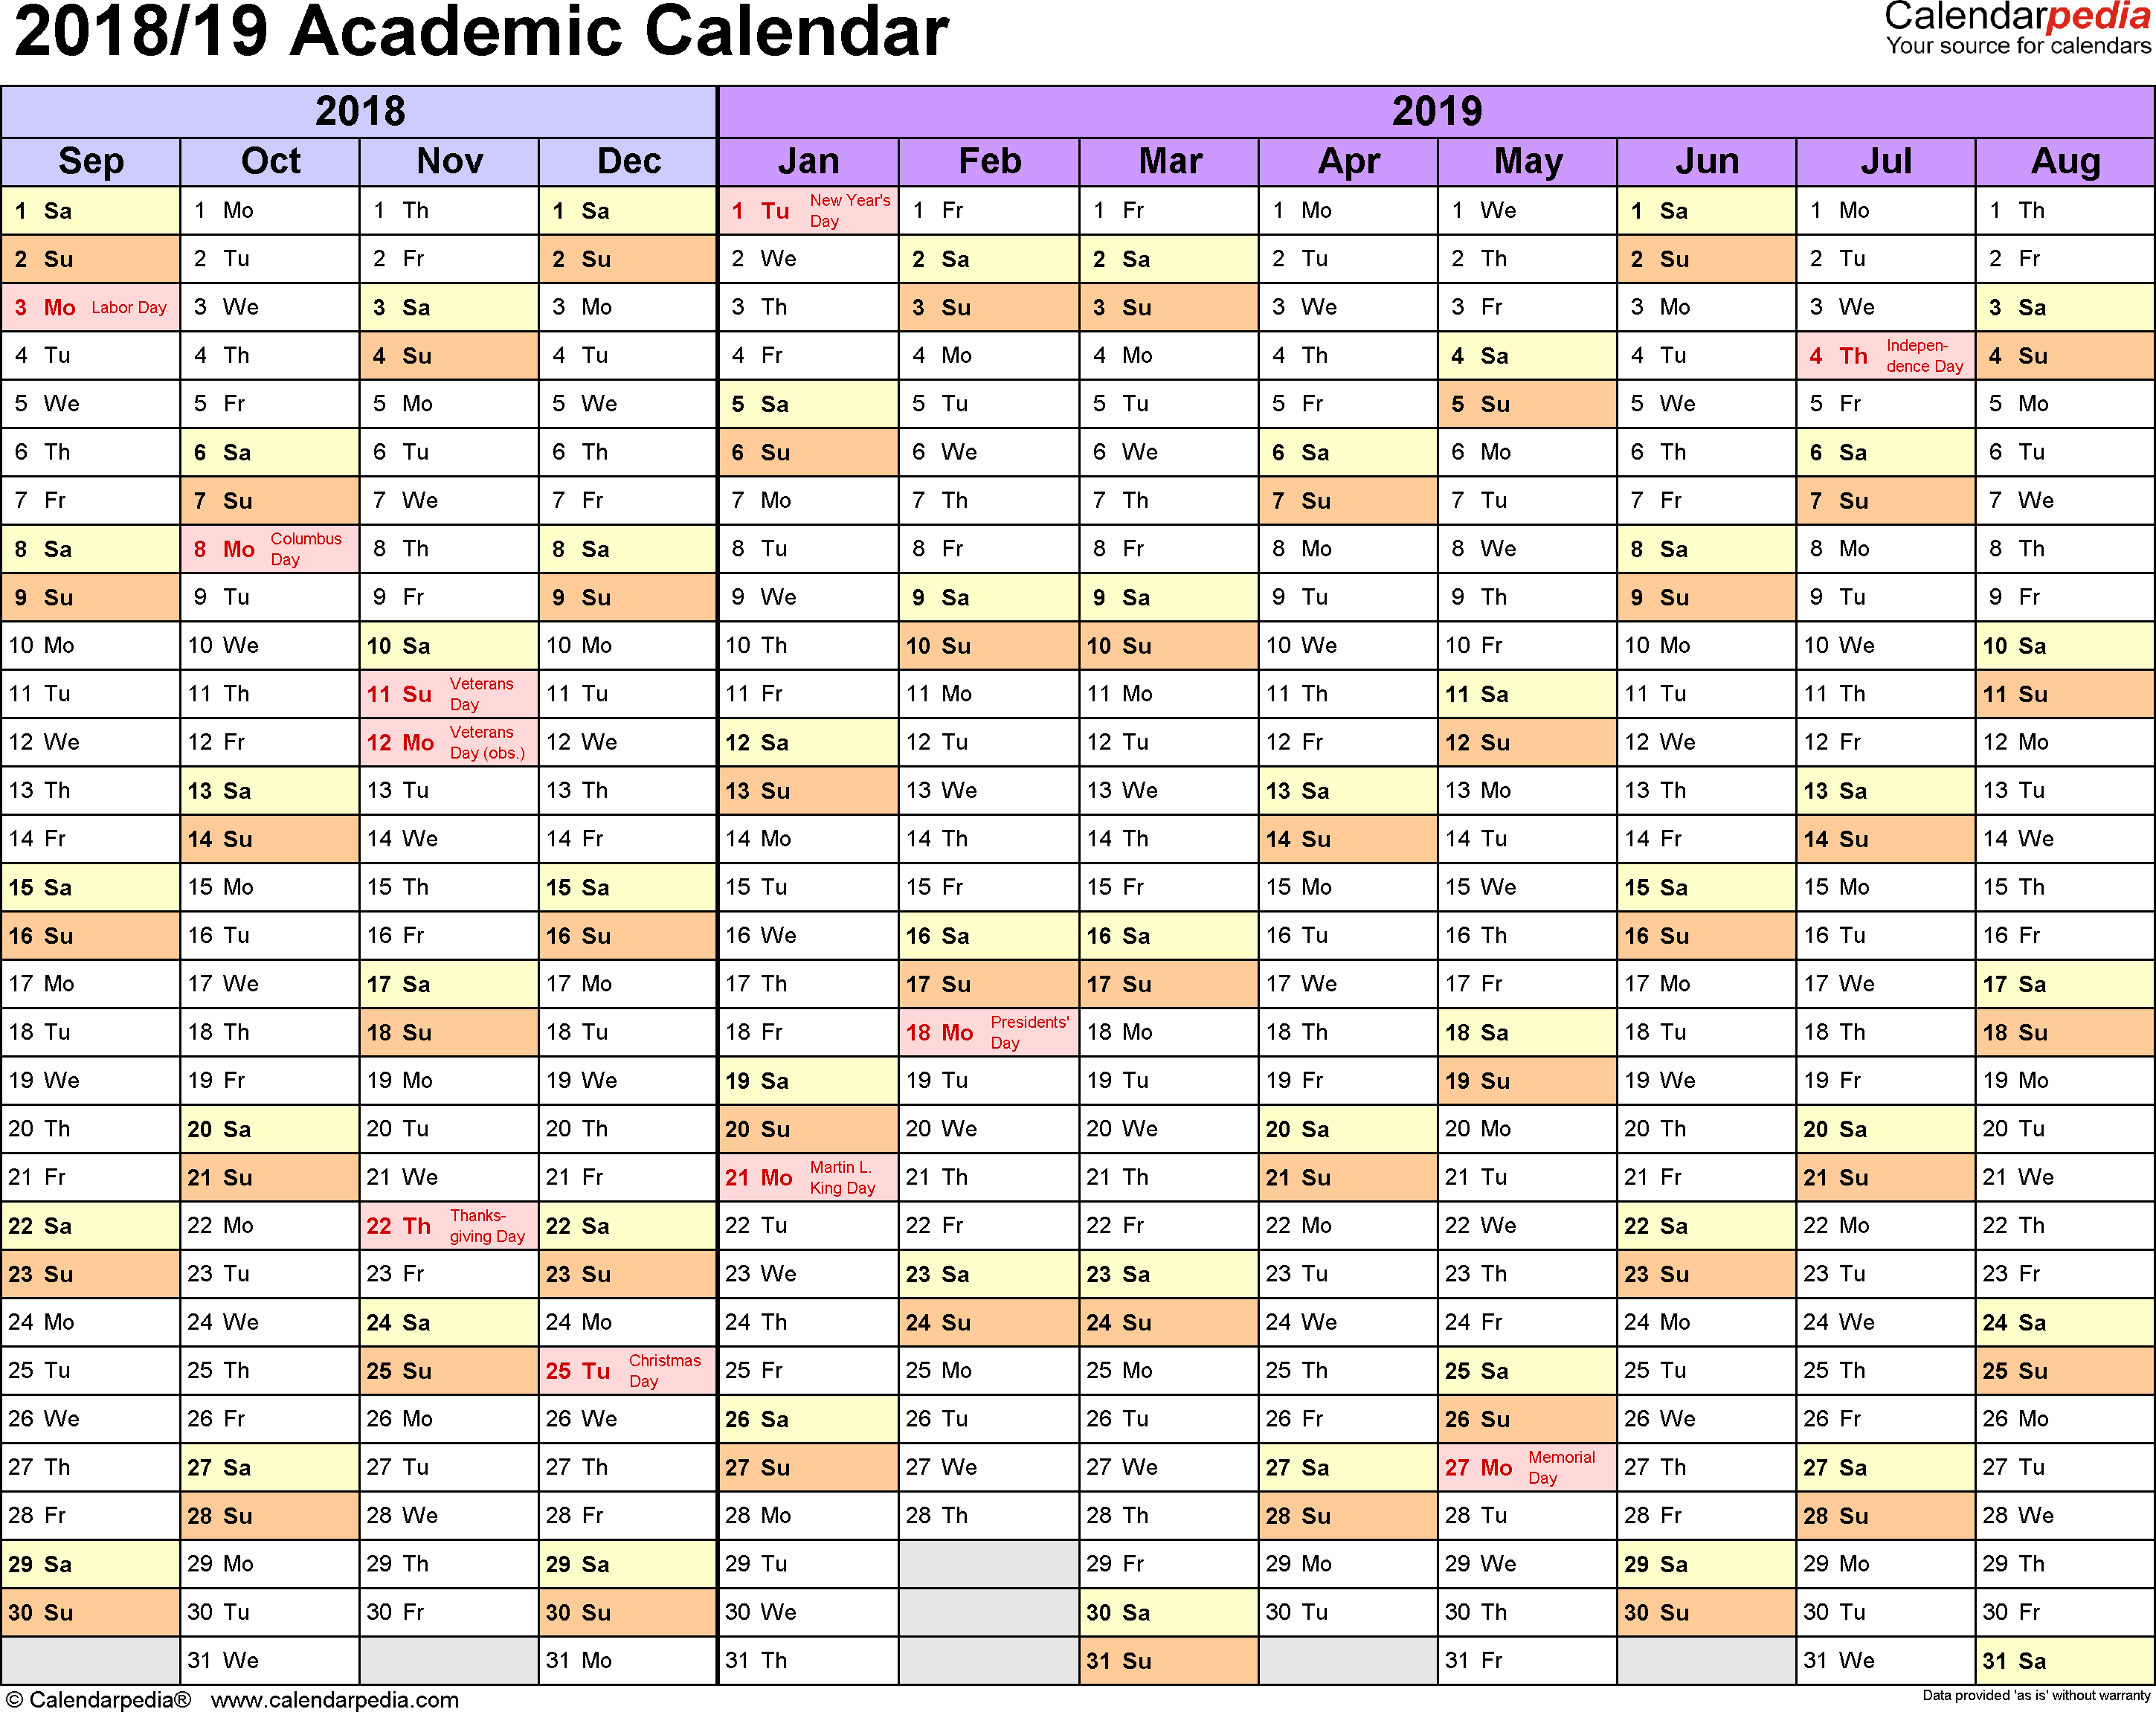 academic calendars 2018 2019 as free printable pdf templates